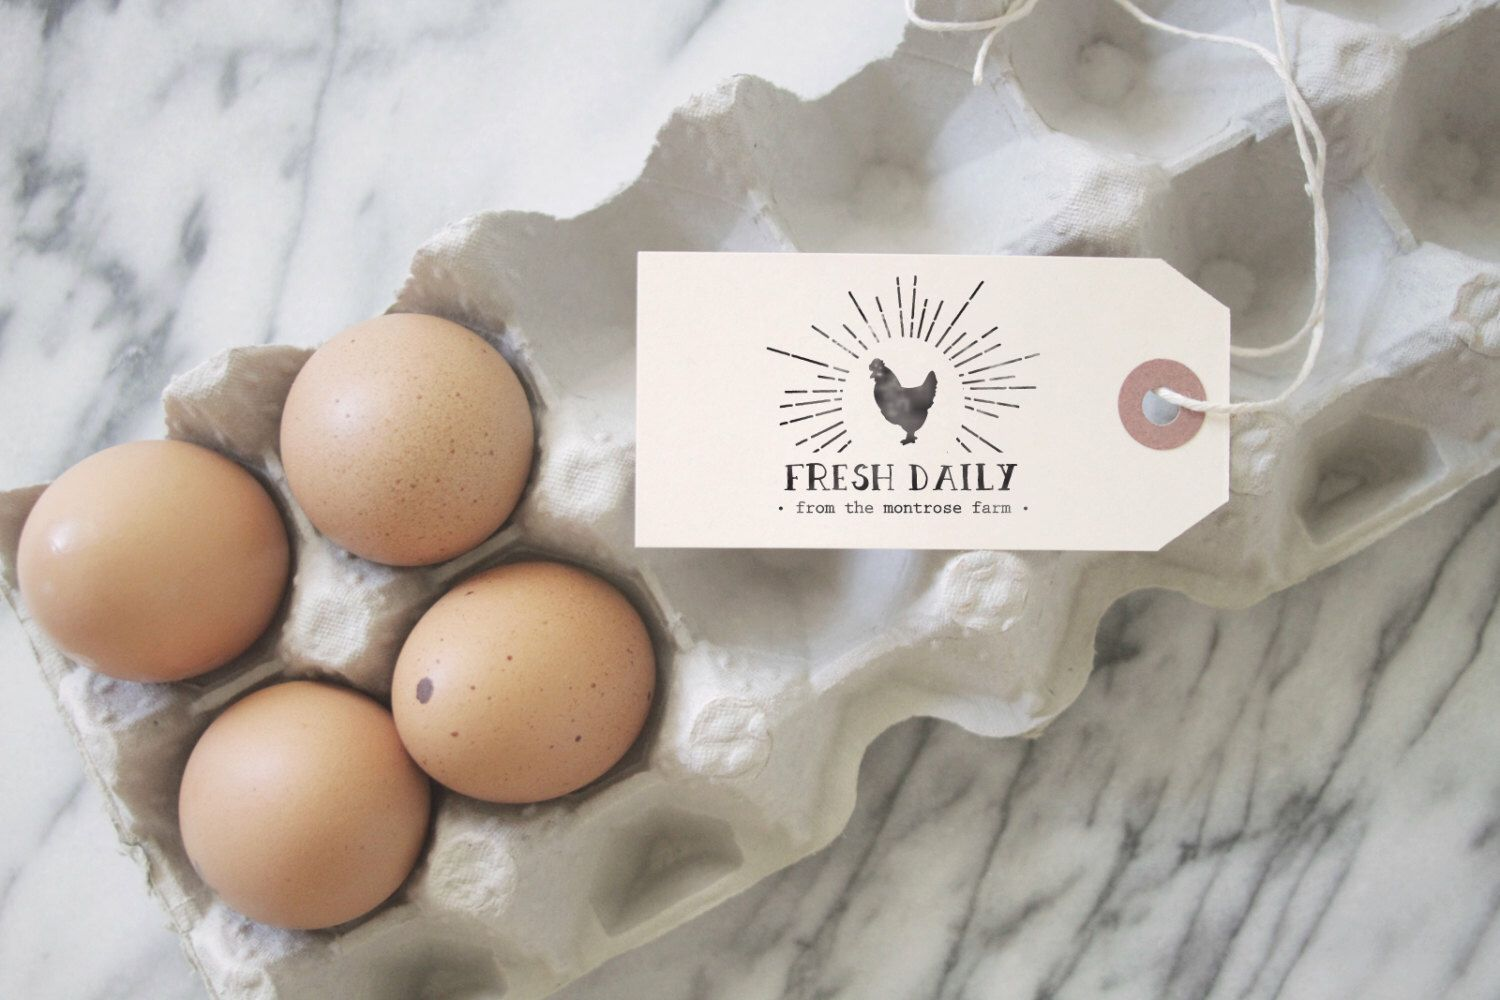 Chicken Rubber Stamp - Egg Carton - Chicken Coop - Hen - Duck Eggs - Egg Labels - Homestead - Farm - Food - Recipe Cards - Custom Packaging by SubstationPaperie on Etsy https://www.etsy.com/listing/243873810/chicken-rubber-stamp-egg-carton-chicken